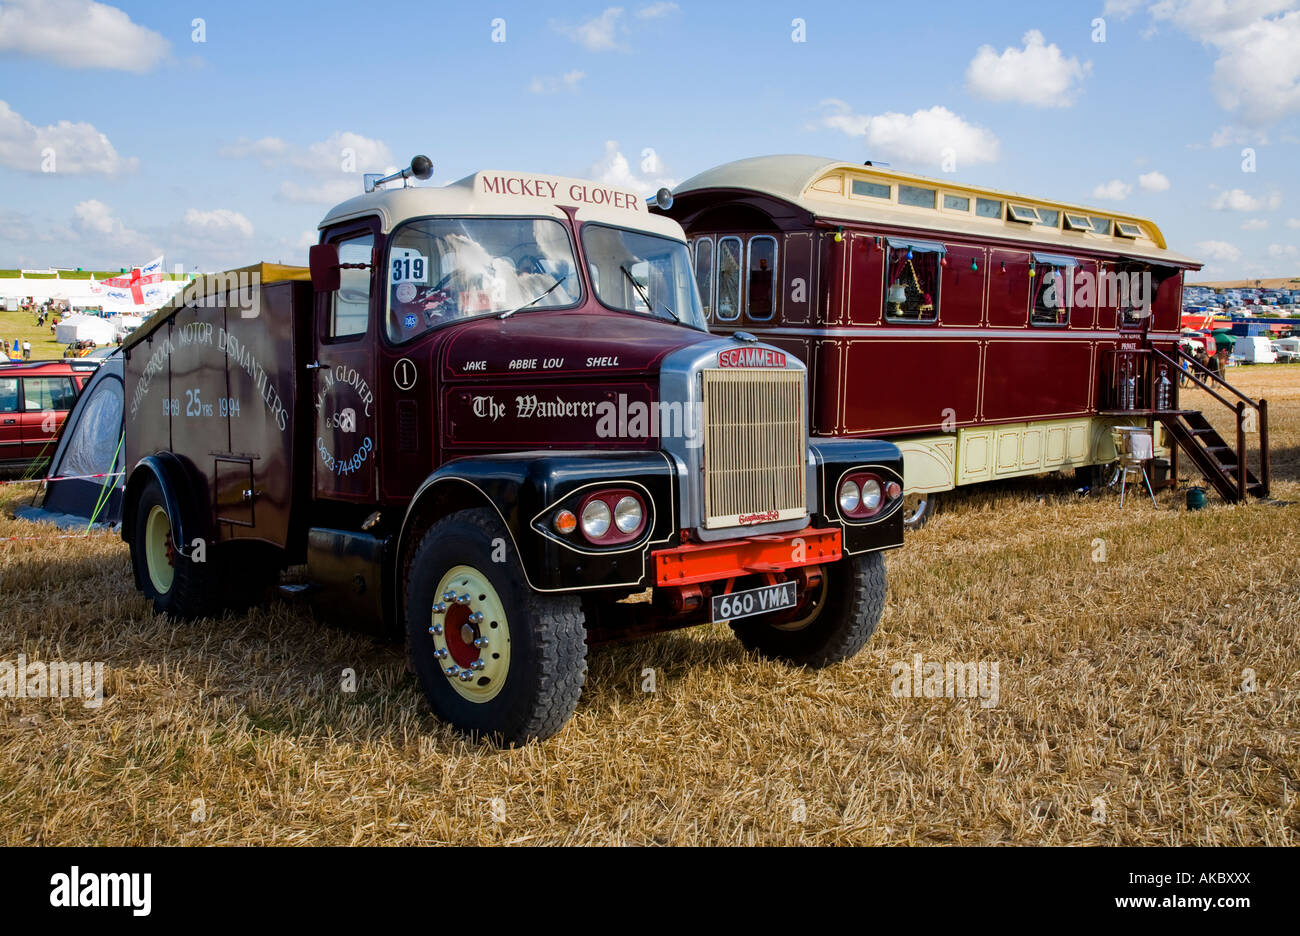 1962 Scammell Ballast Box showman's tractor unit and caravan, Reg No. 660 VMA, at the Great Dorset Steam Fair, - Stock Image